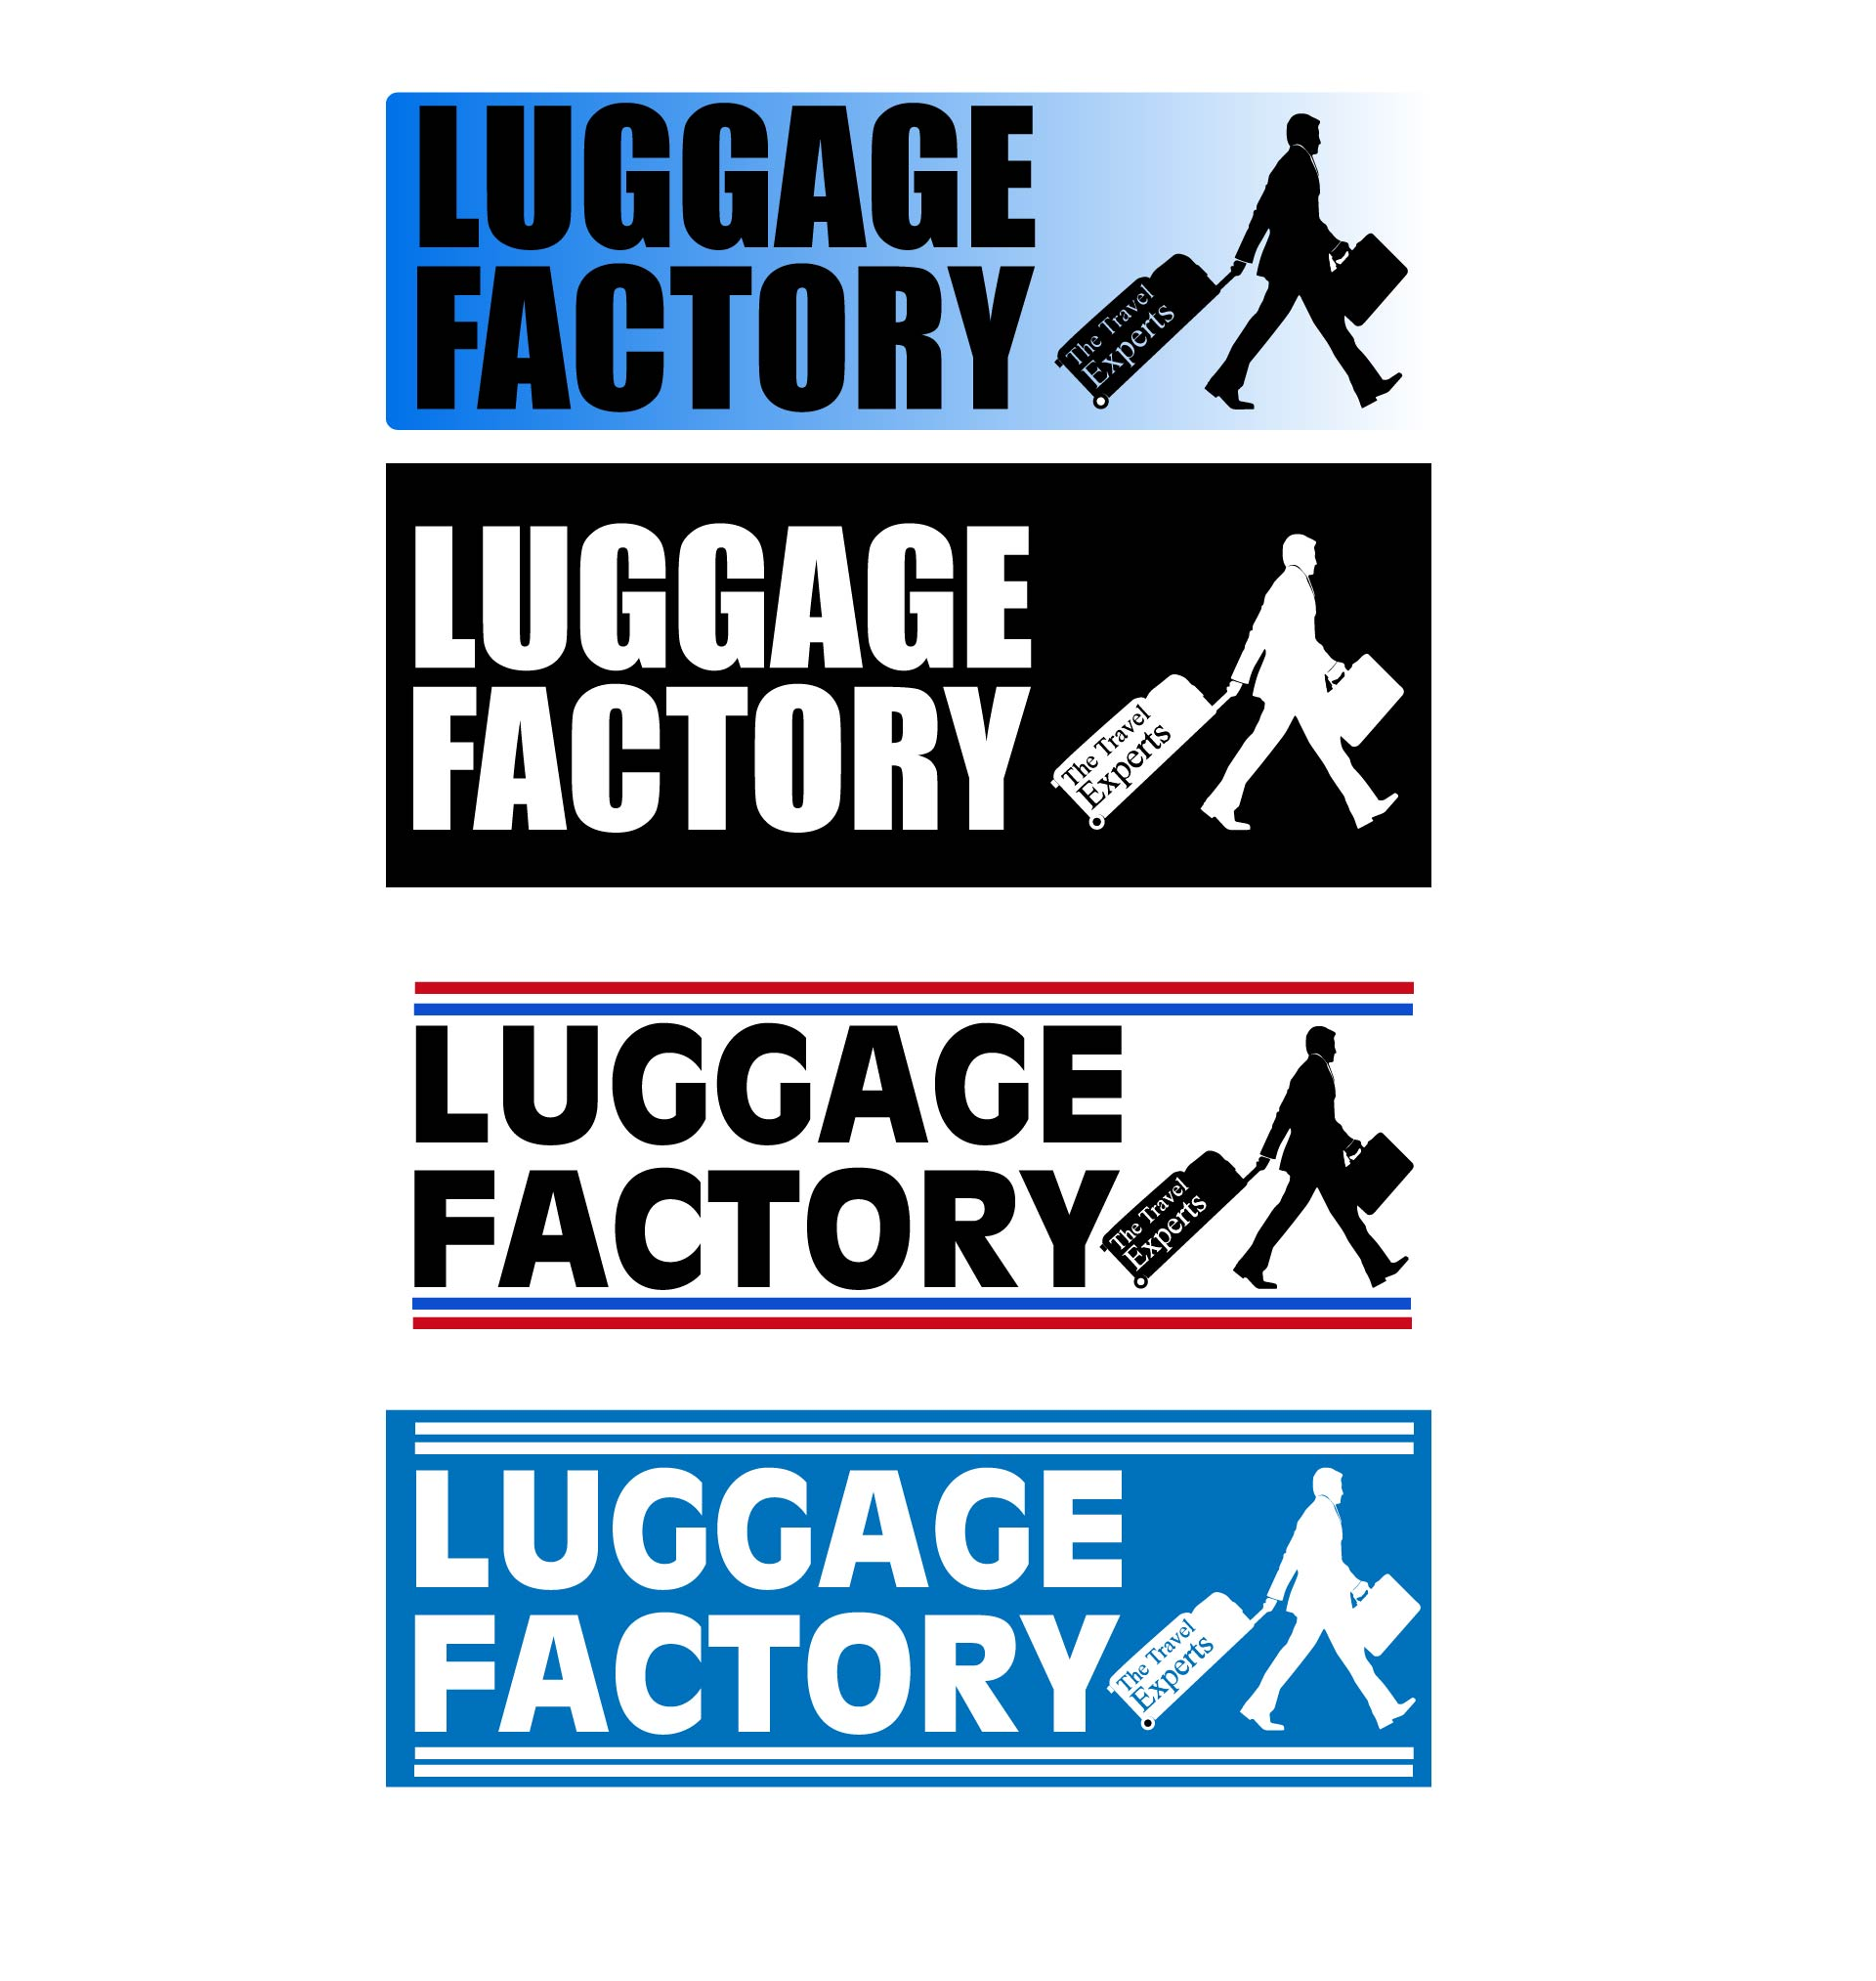 Logo Design by chAnDOS - Entry No. 168 in the Logo Design Contest Creative Logo Design for Luggage Factory.